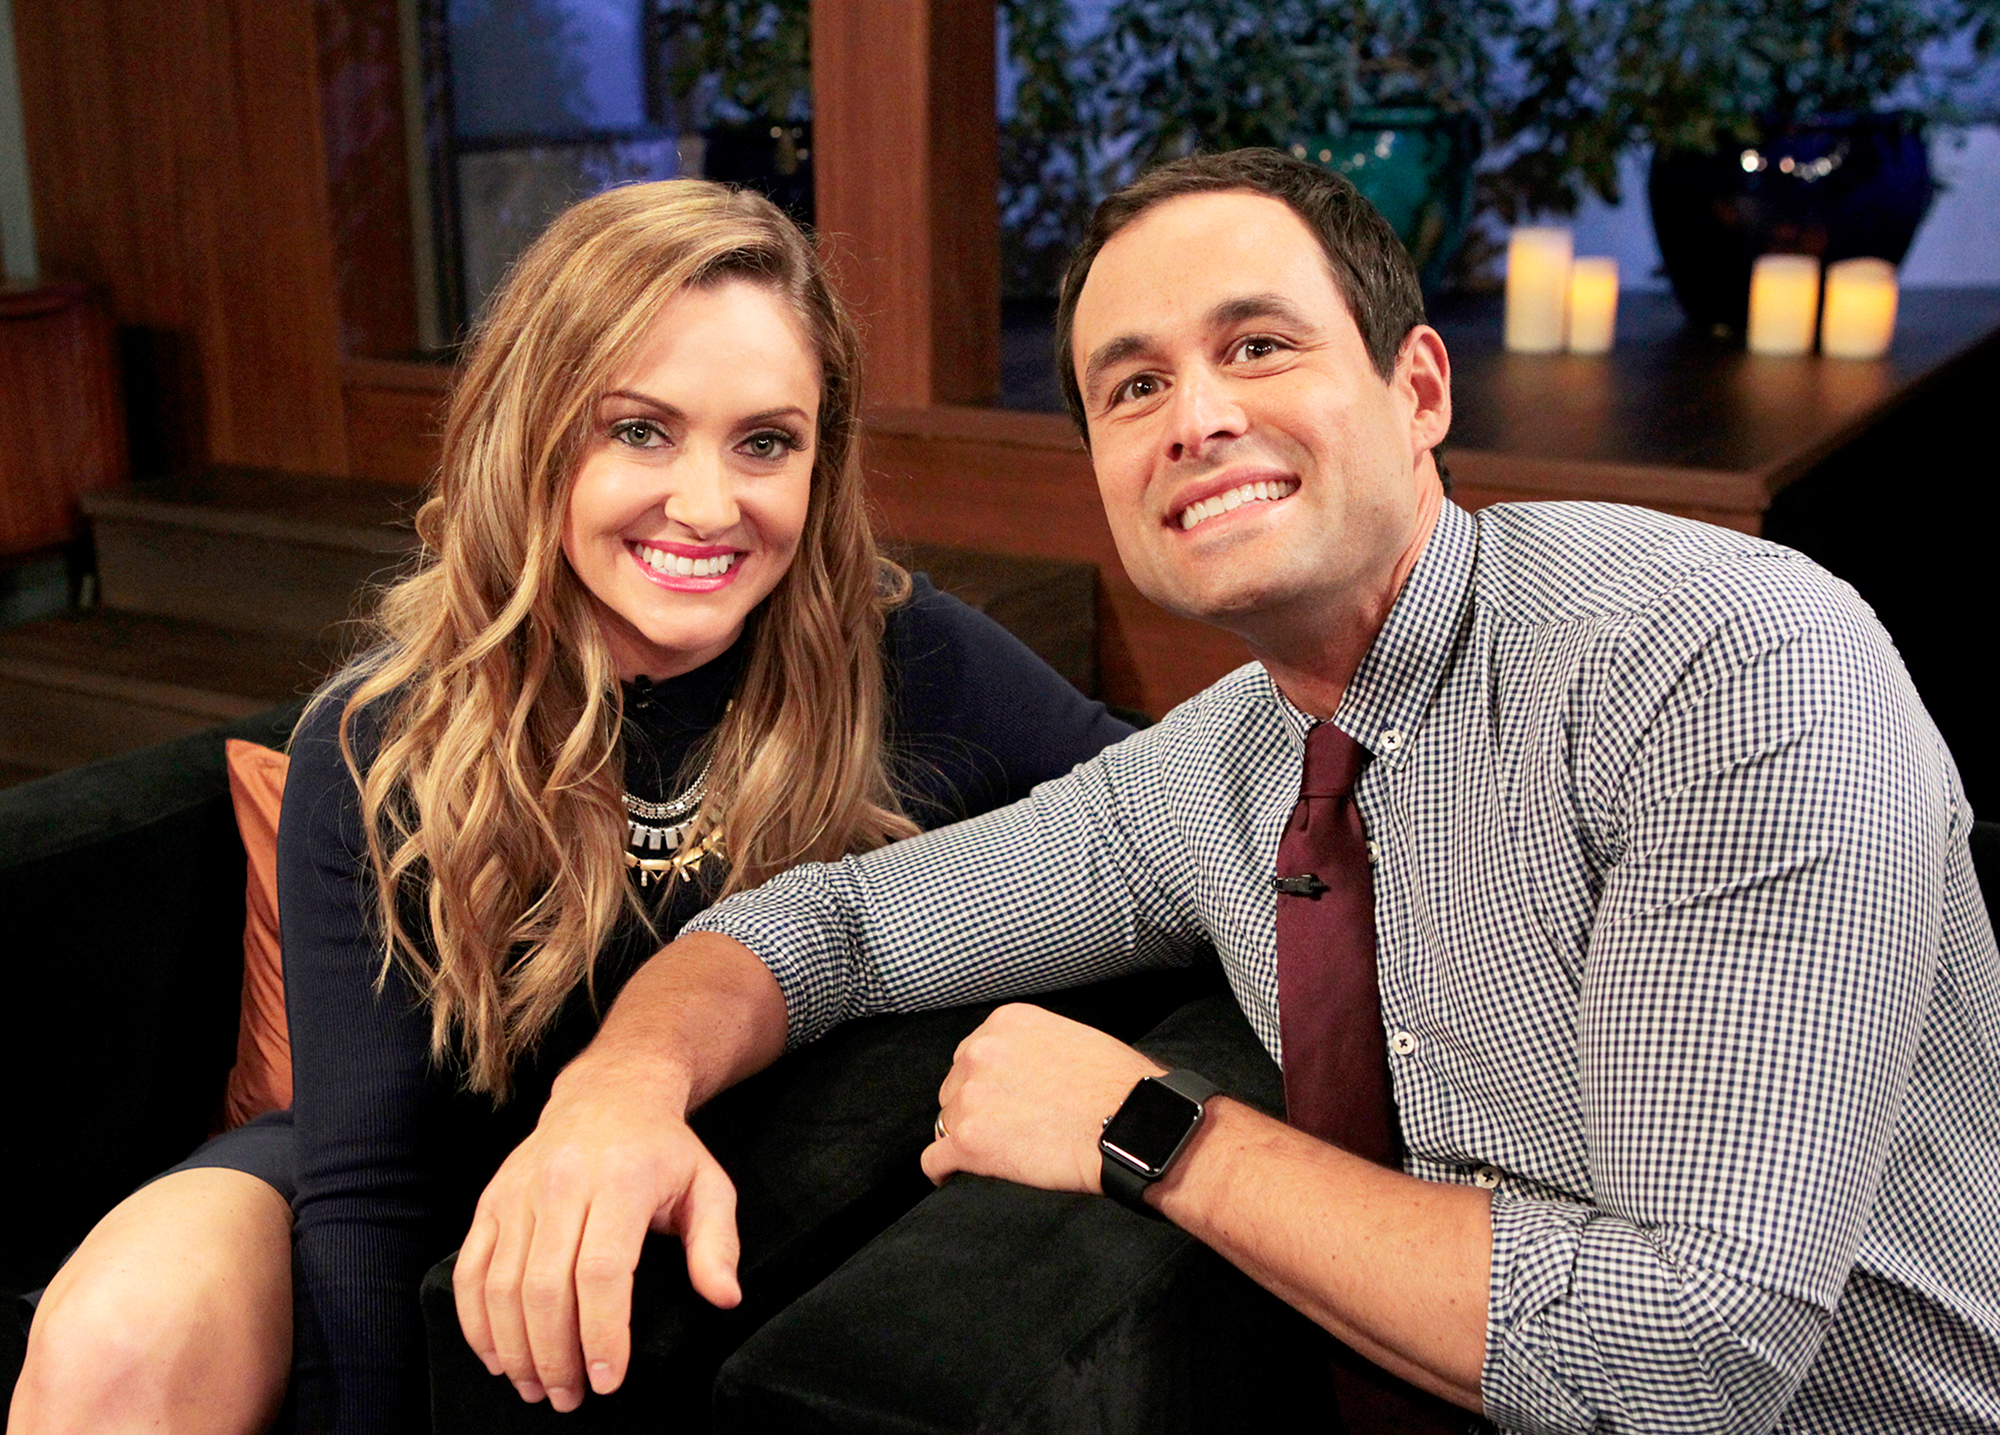 Molly Mesnick and Jason Mesnick on ABC's after-show 'Bachelor Live' - Molly Mesnick and Jason Mesnick on ABC's after-show 'Bachelor Live'